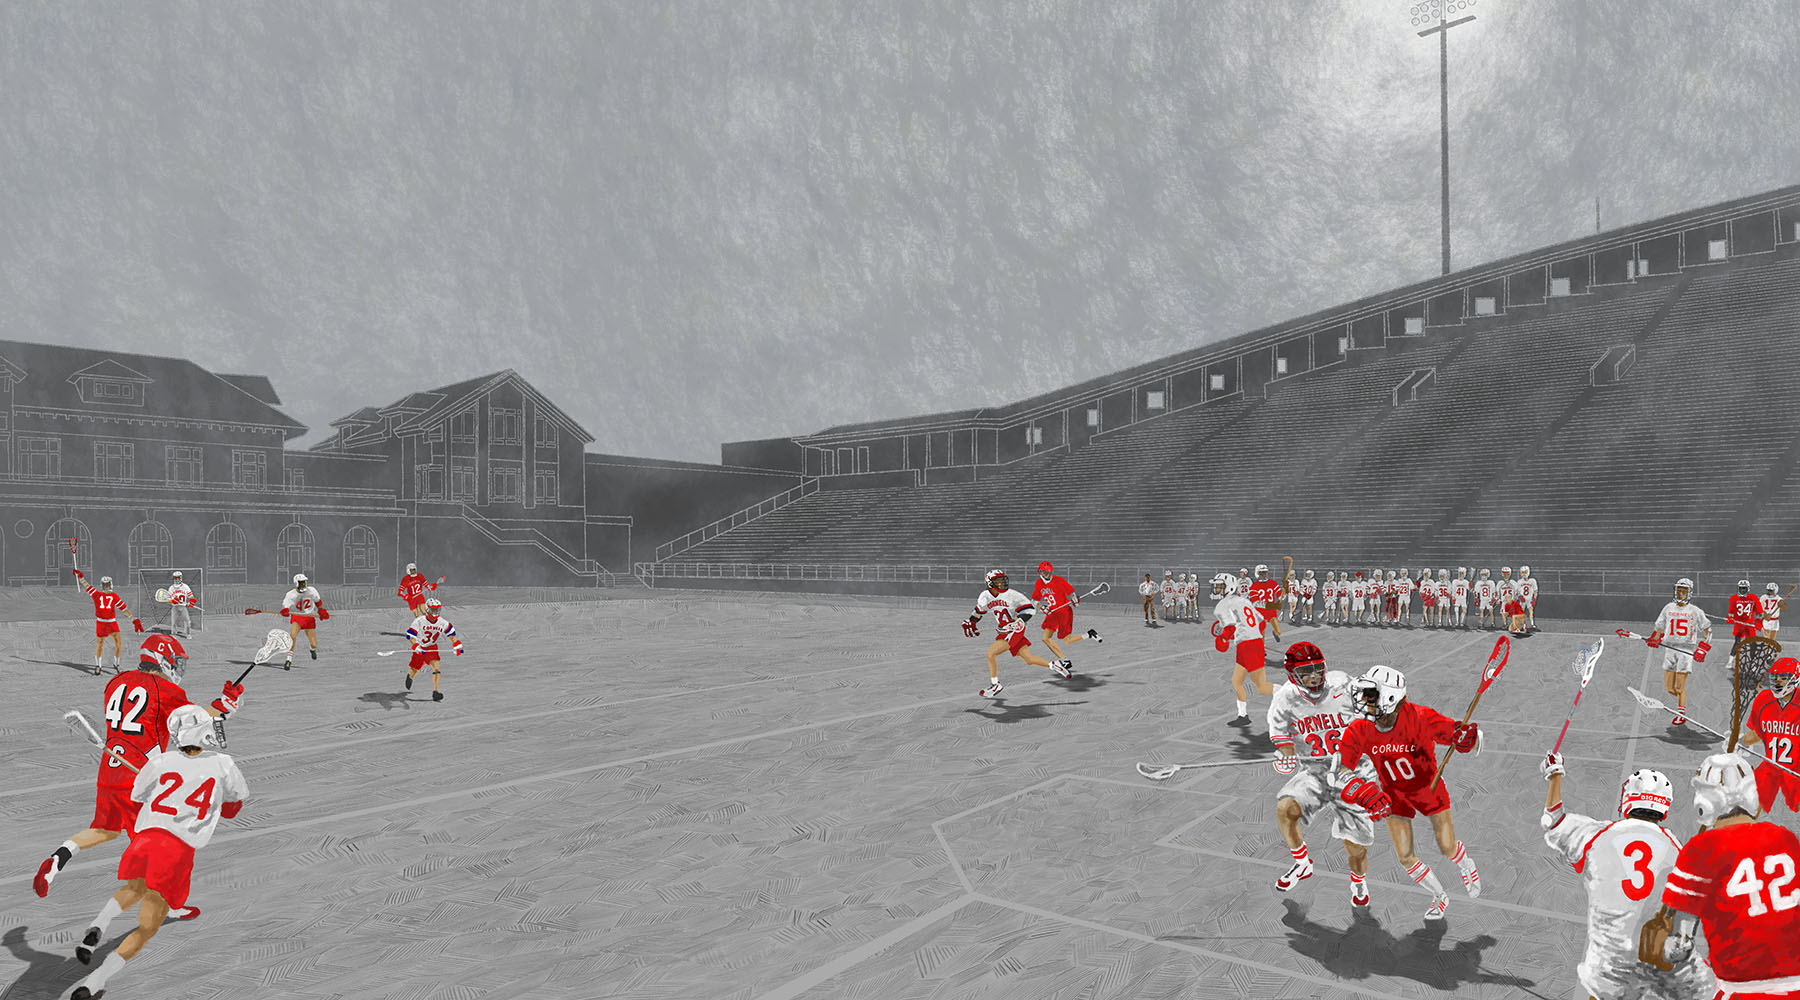 Fine Art Prints - First is a mixed media (pen, ink, digital) rendering of the history of Cornell Lacrosse. It depicts players from 1970 thru the present on the filed, together, in their respective primes.I worked with a respected giclee printer to create high quality LE art prints and canvas printsAudience: Alumni and fans